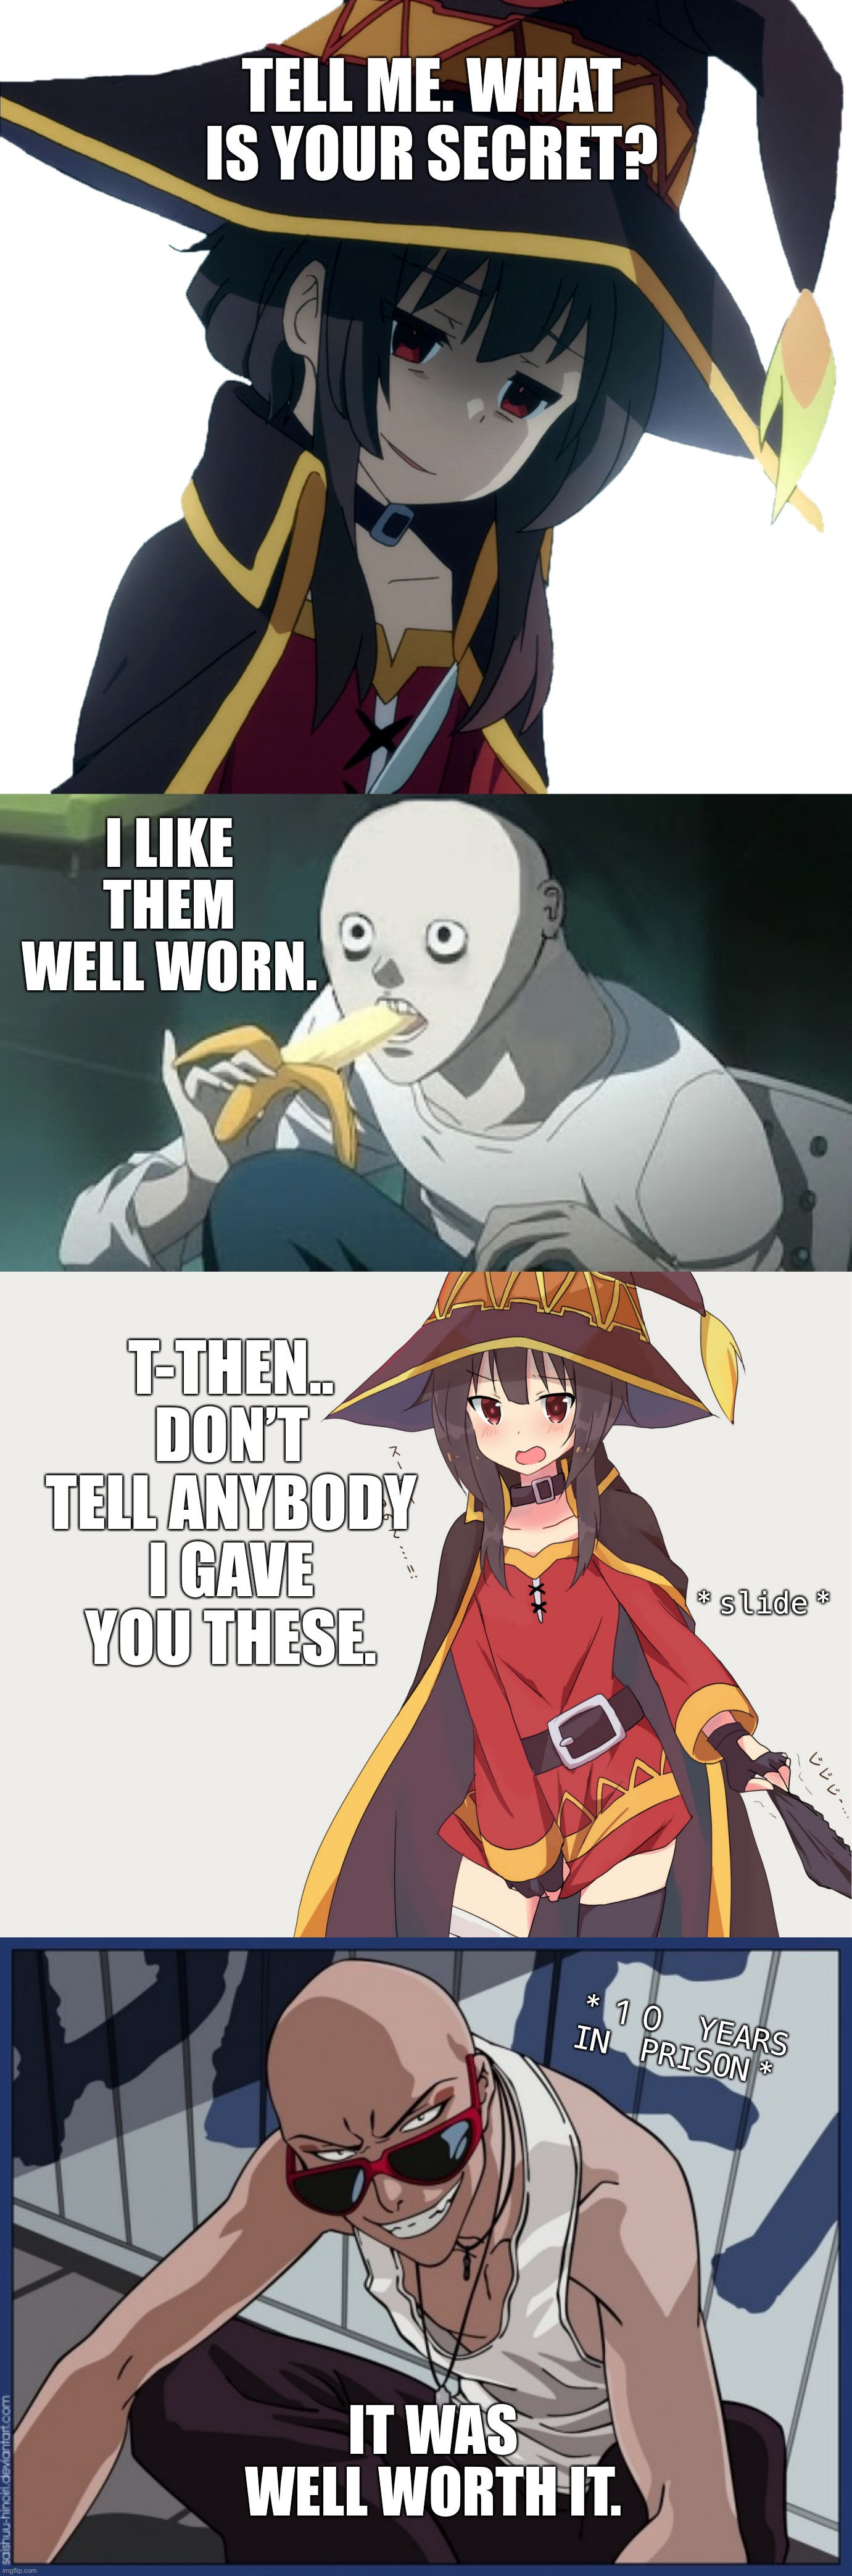 TELL ME. WHAT IS YOUR SECRET? |  TELL ME. WHAT IS YOUR SECRET? I LIKE THEM WELL WORN. T-THEN.. DON'T TELL ANYBODY I GAVE YOU THESE. *slide*; *10 YEARS IN PRISON*; IT WAS WELL WORTH IT. | image tagged in funny,memes,worth it,anime,megumin,panties | made w/ Imgflip meme maker